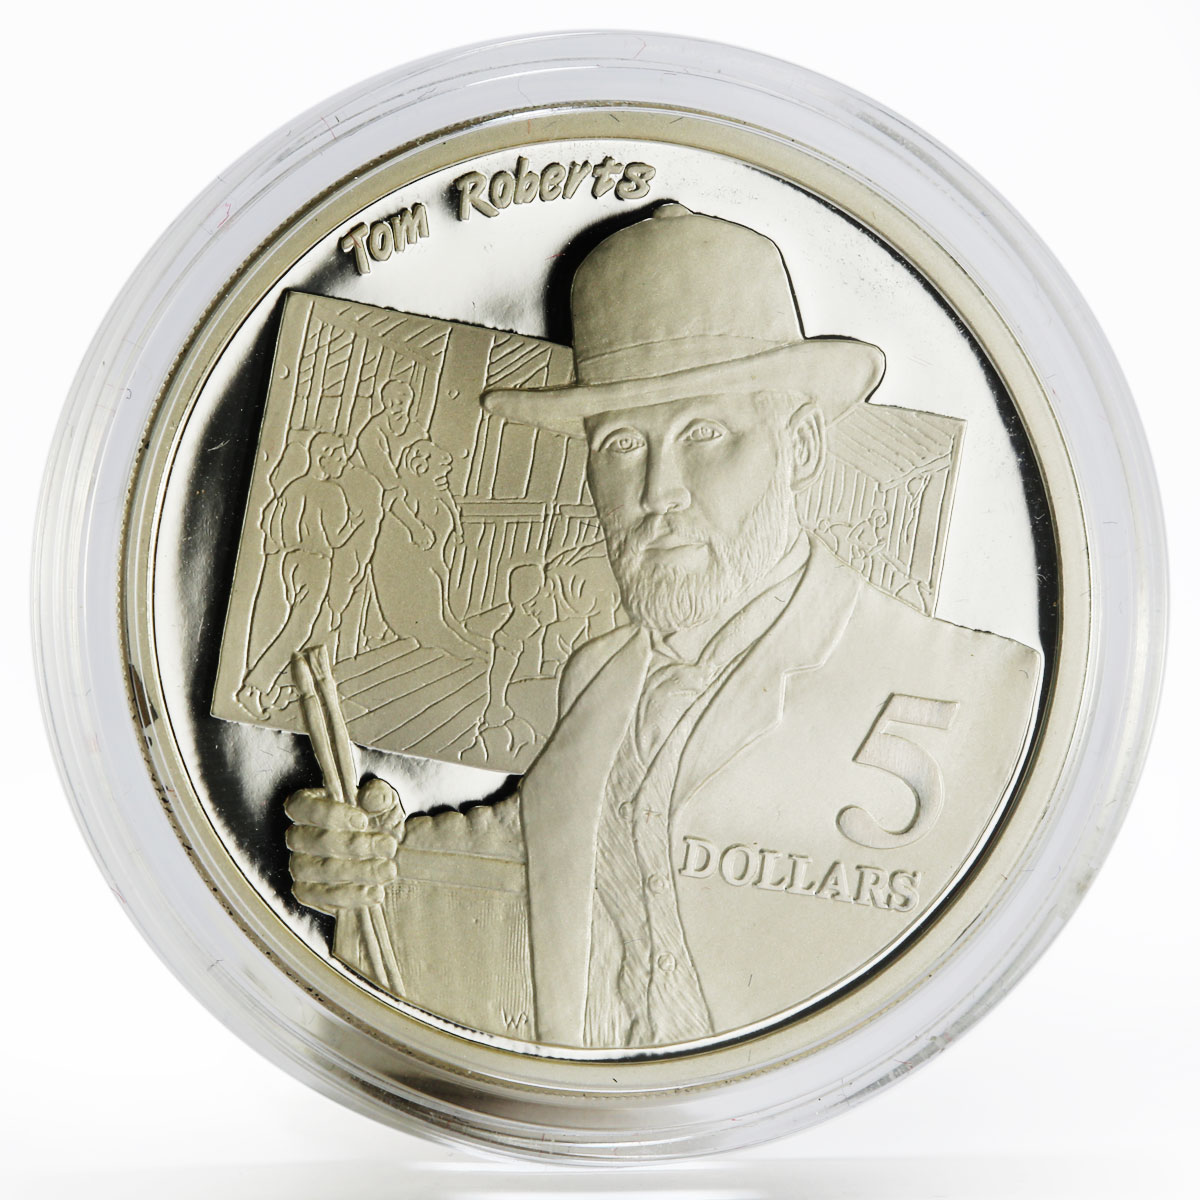 Australia 5 dollars National Identity series Tom Roberts proof silver coin 1996